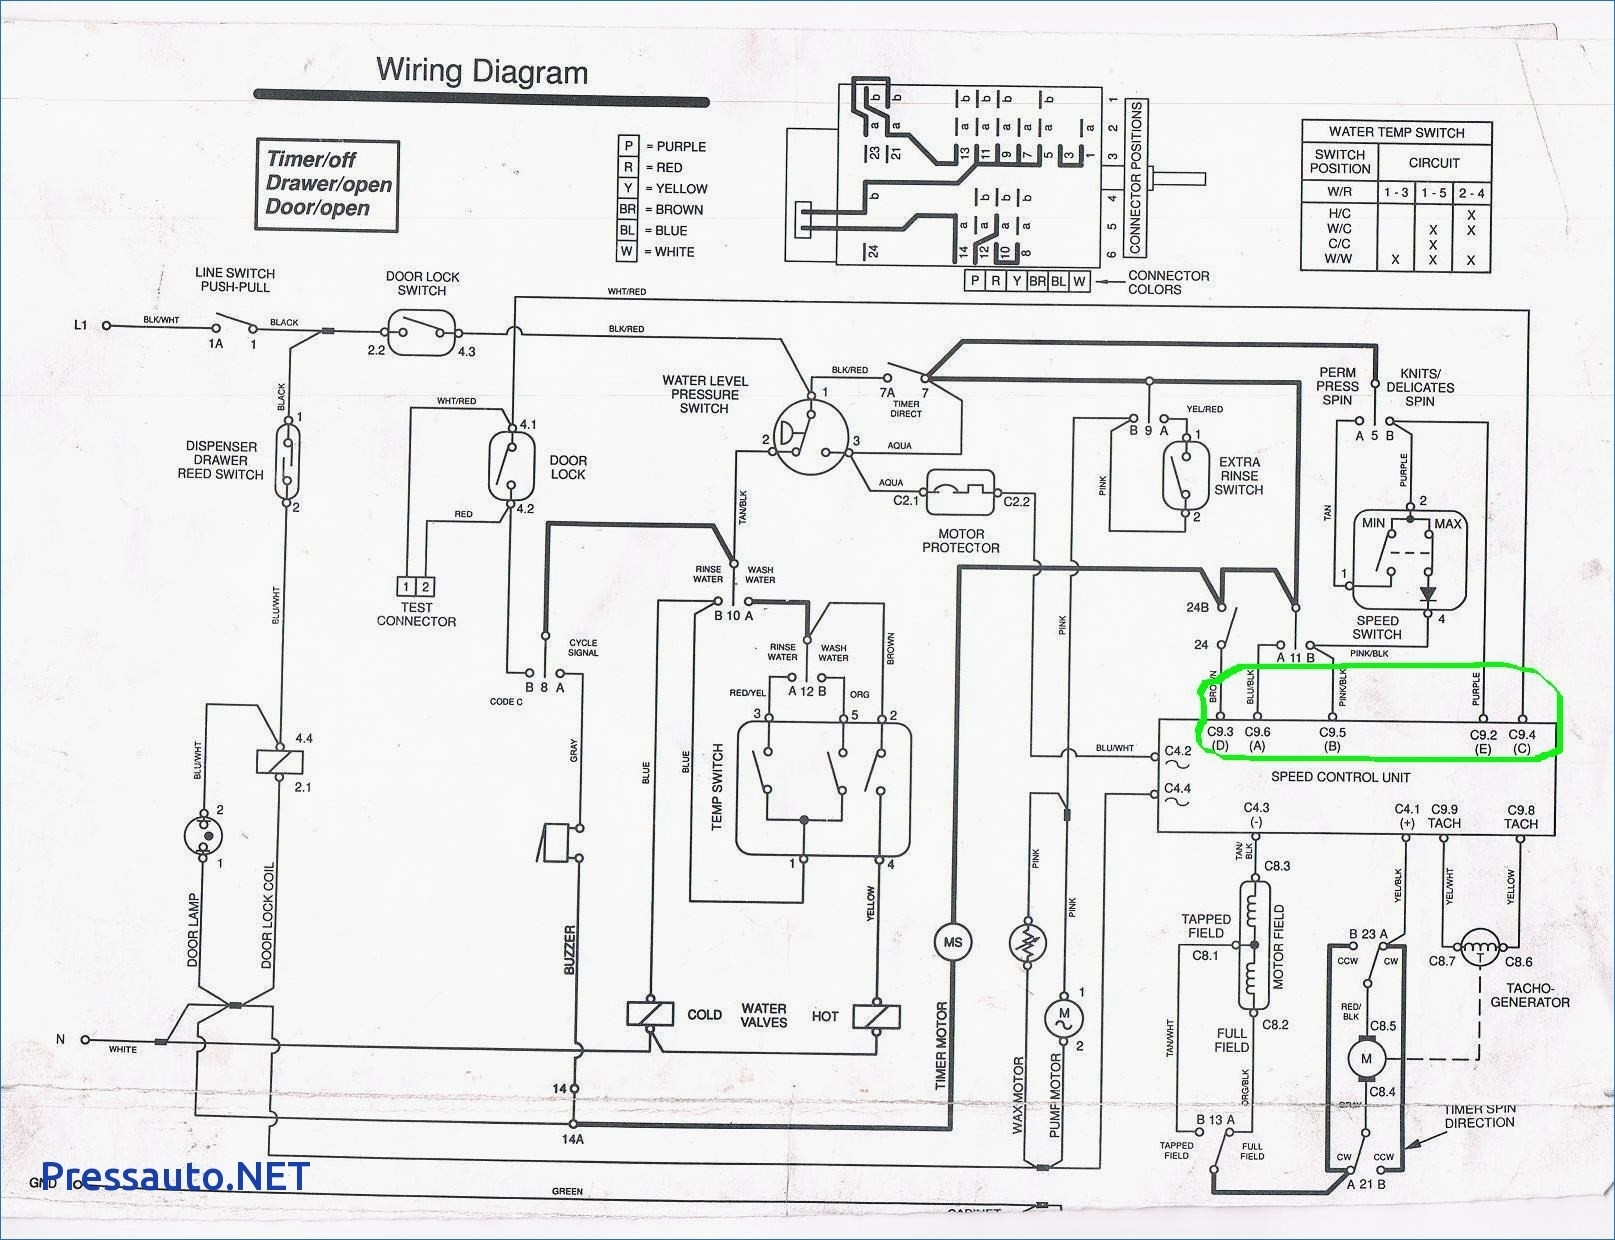 Whirlpool Microwave Schematic Diagram Wiring Diagram